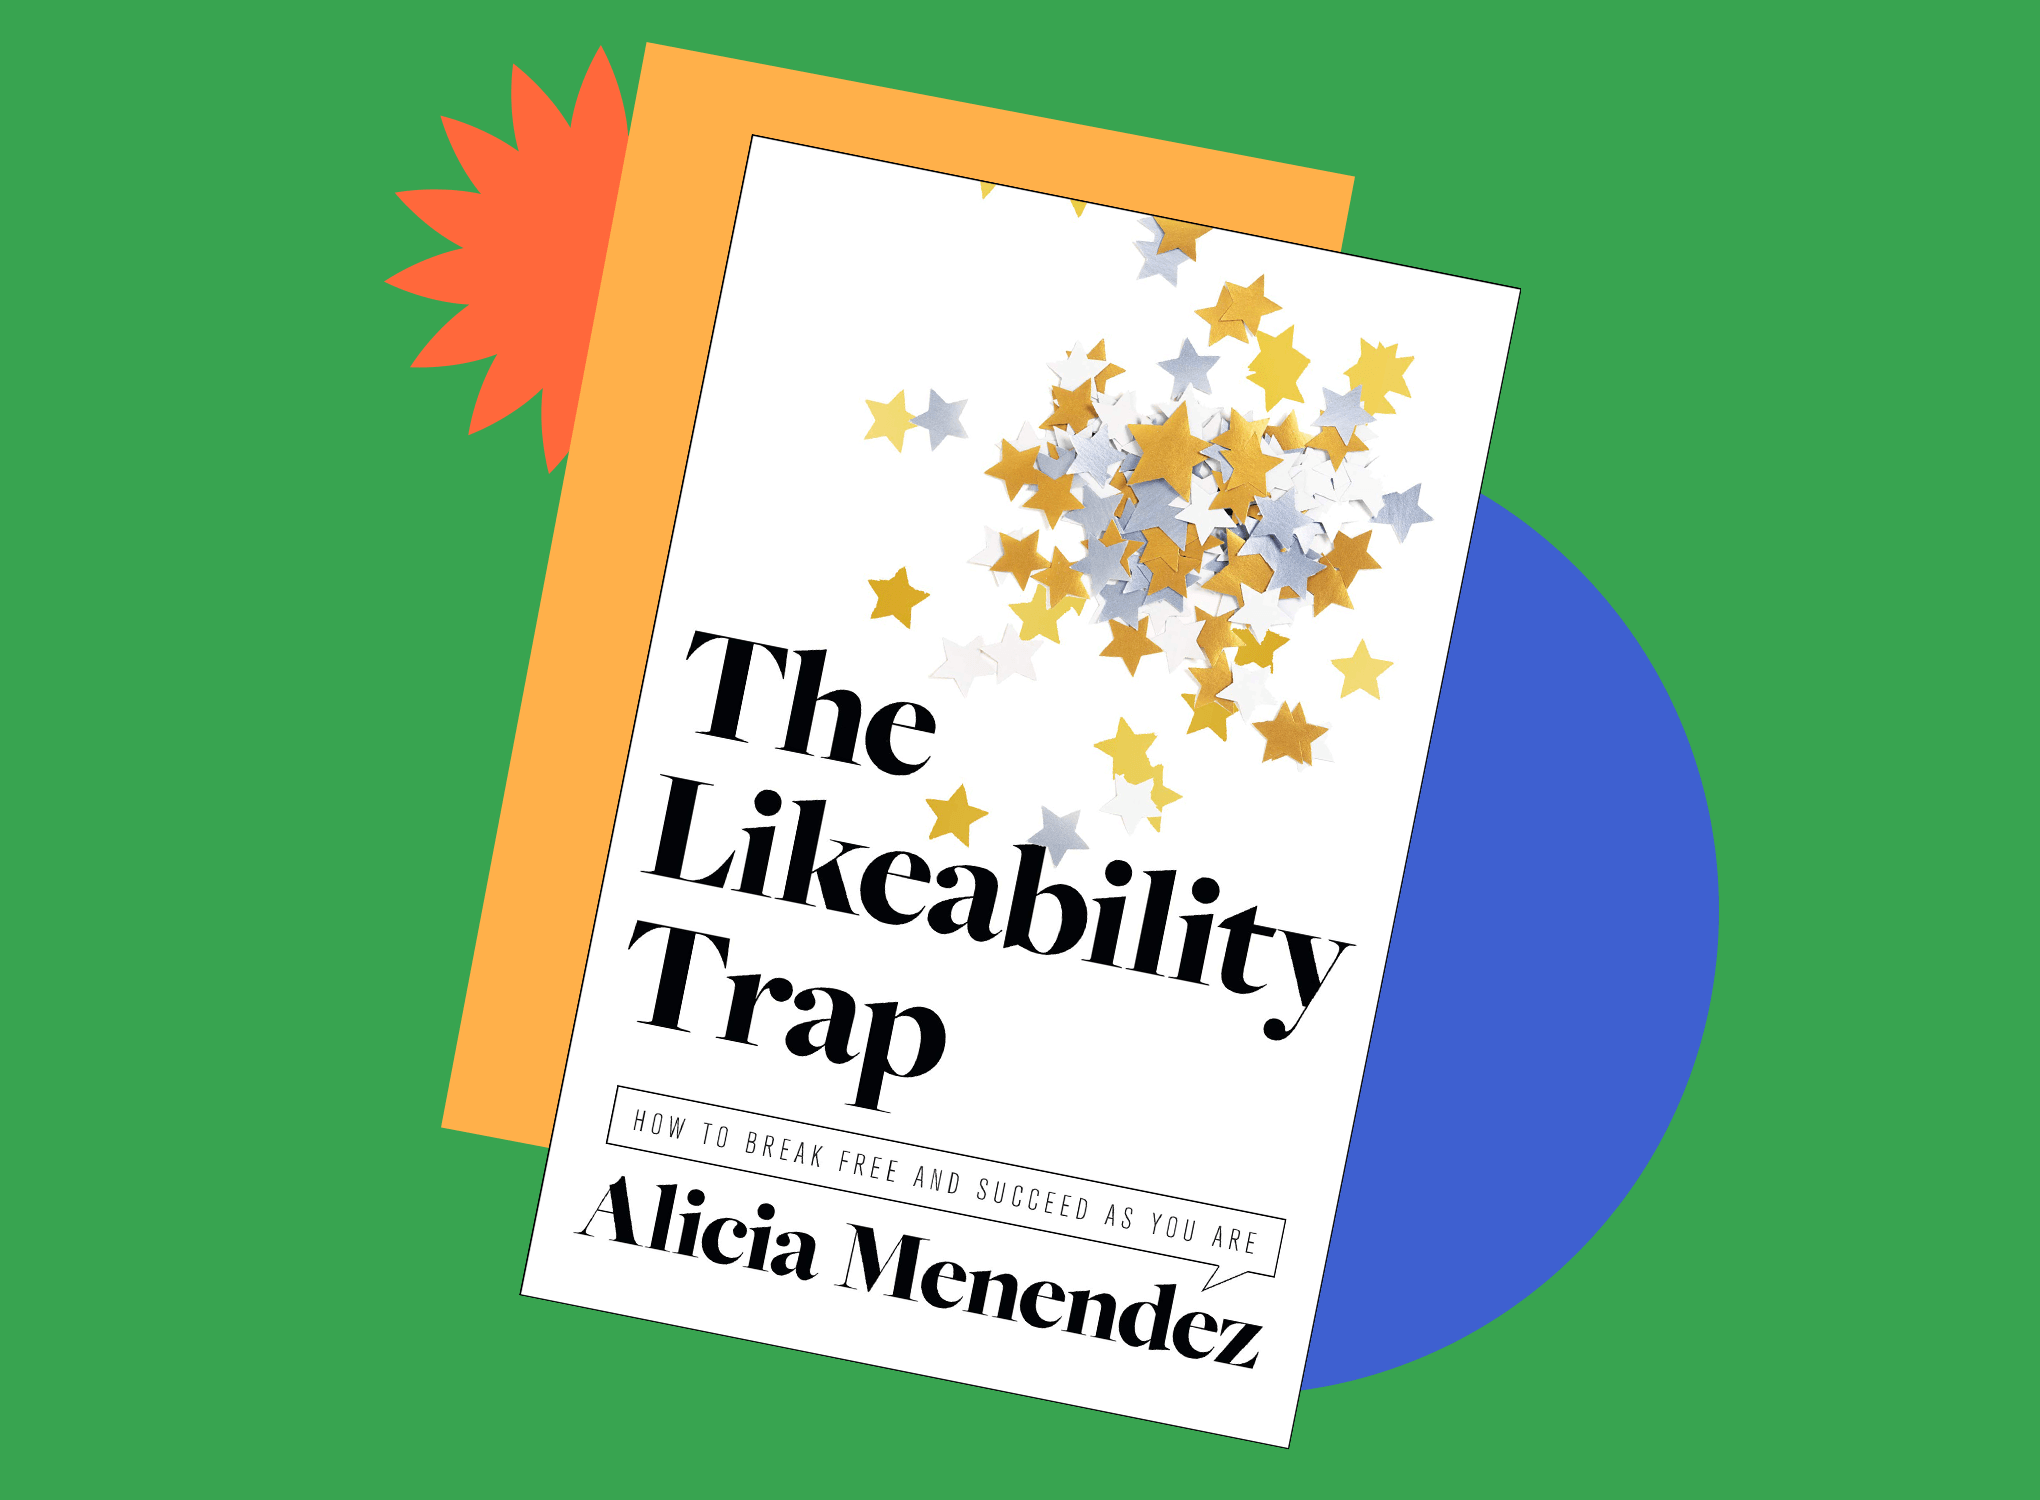 Book jacket cover for The Likeability Trap: How to Break Free and Succeed as You Are by Alicia Menendez